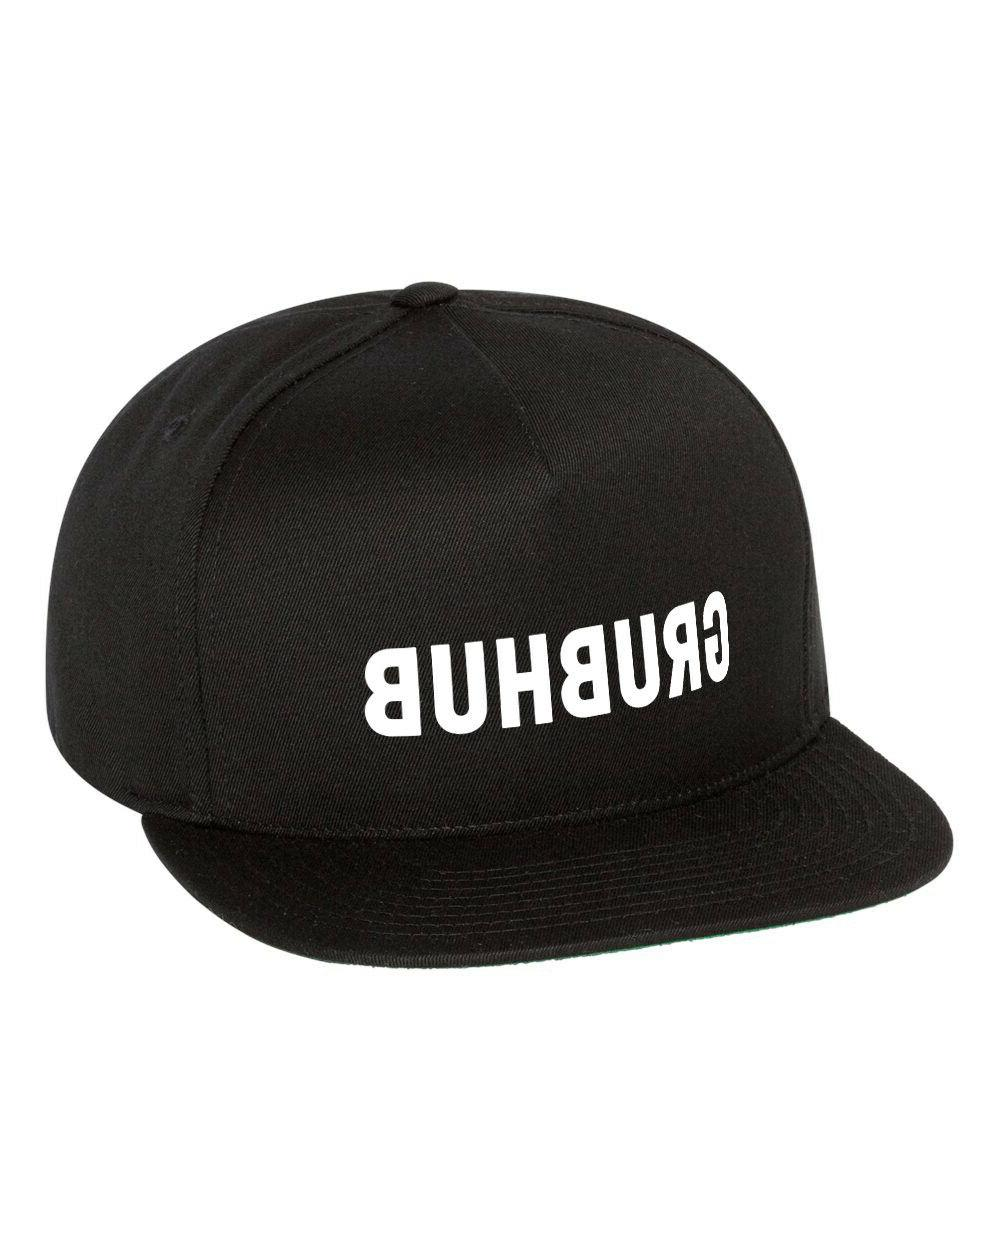 grubhub food delivery driver snapback hat cap